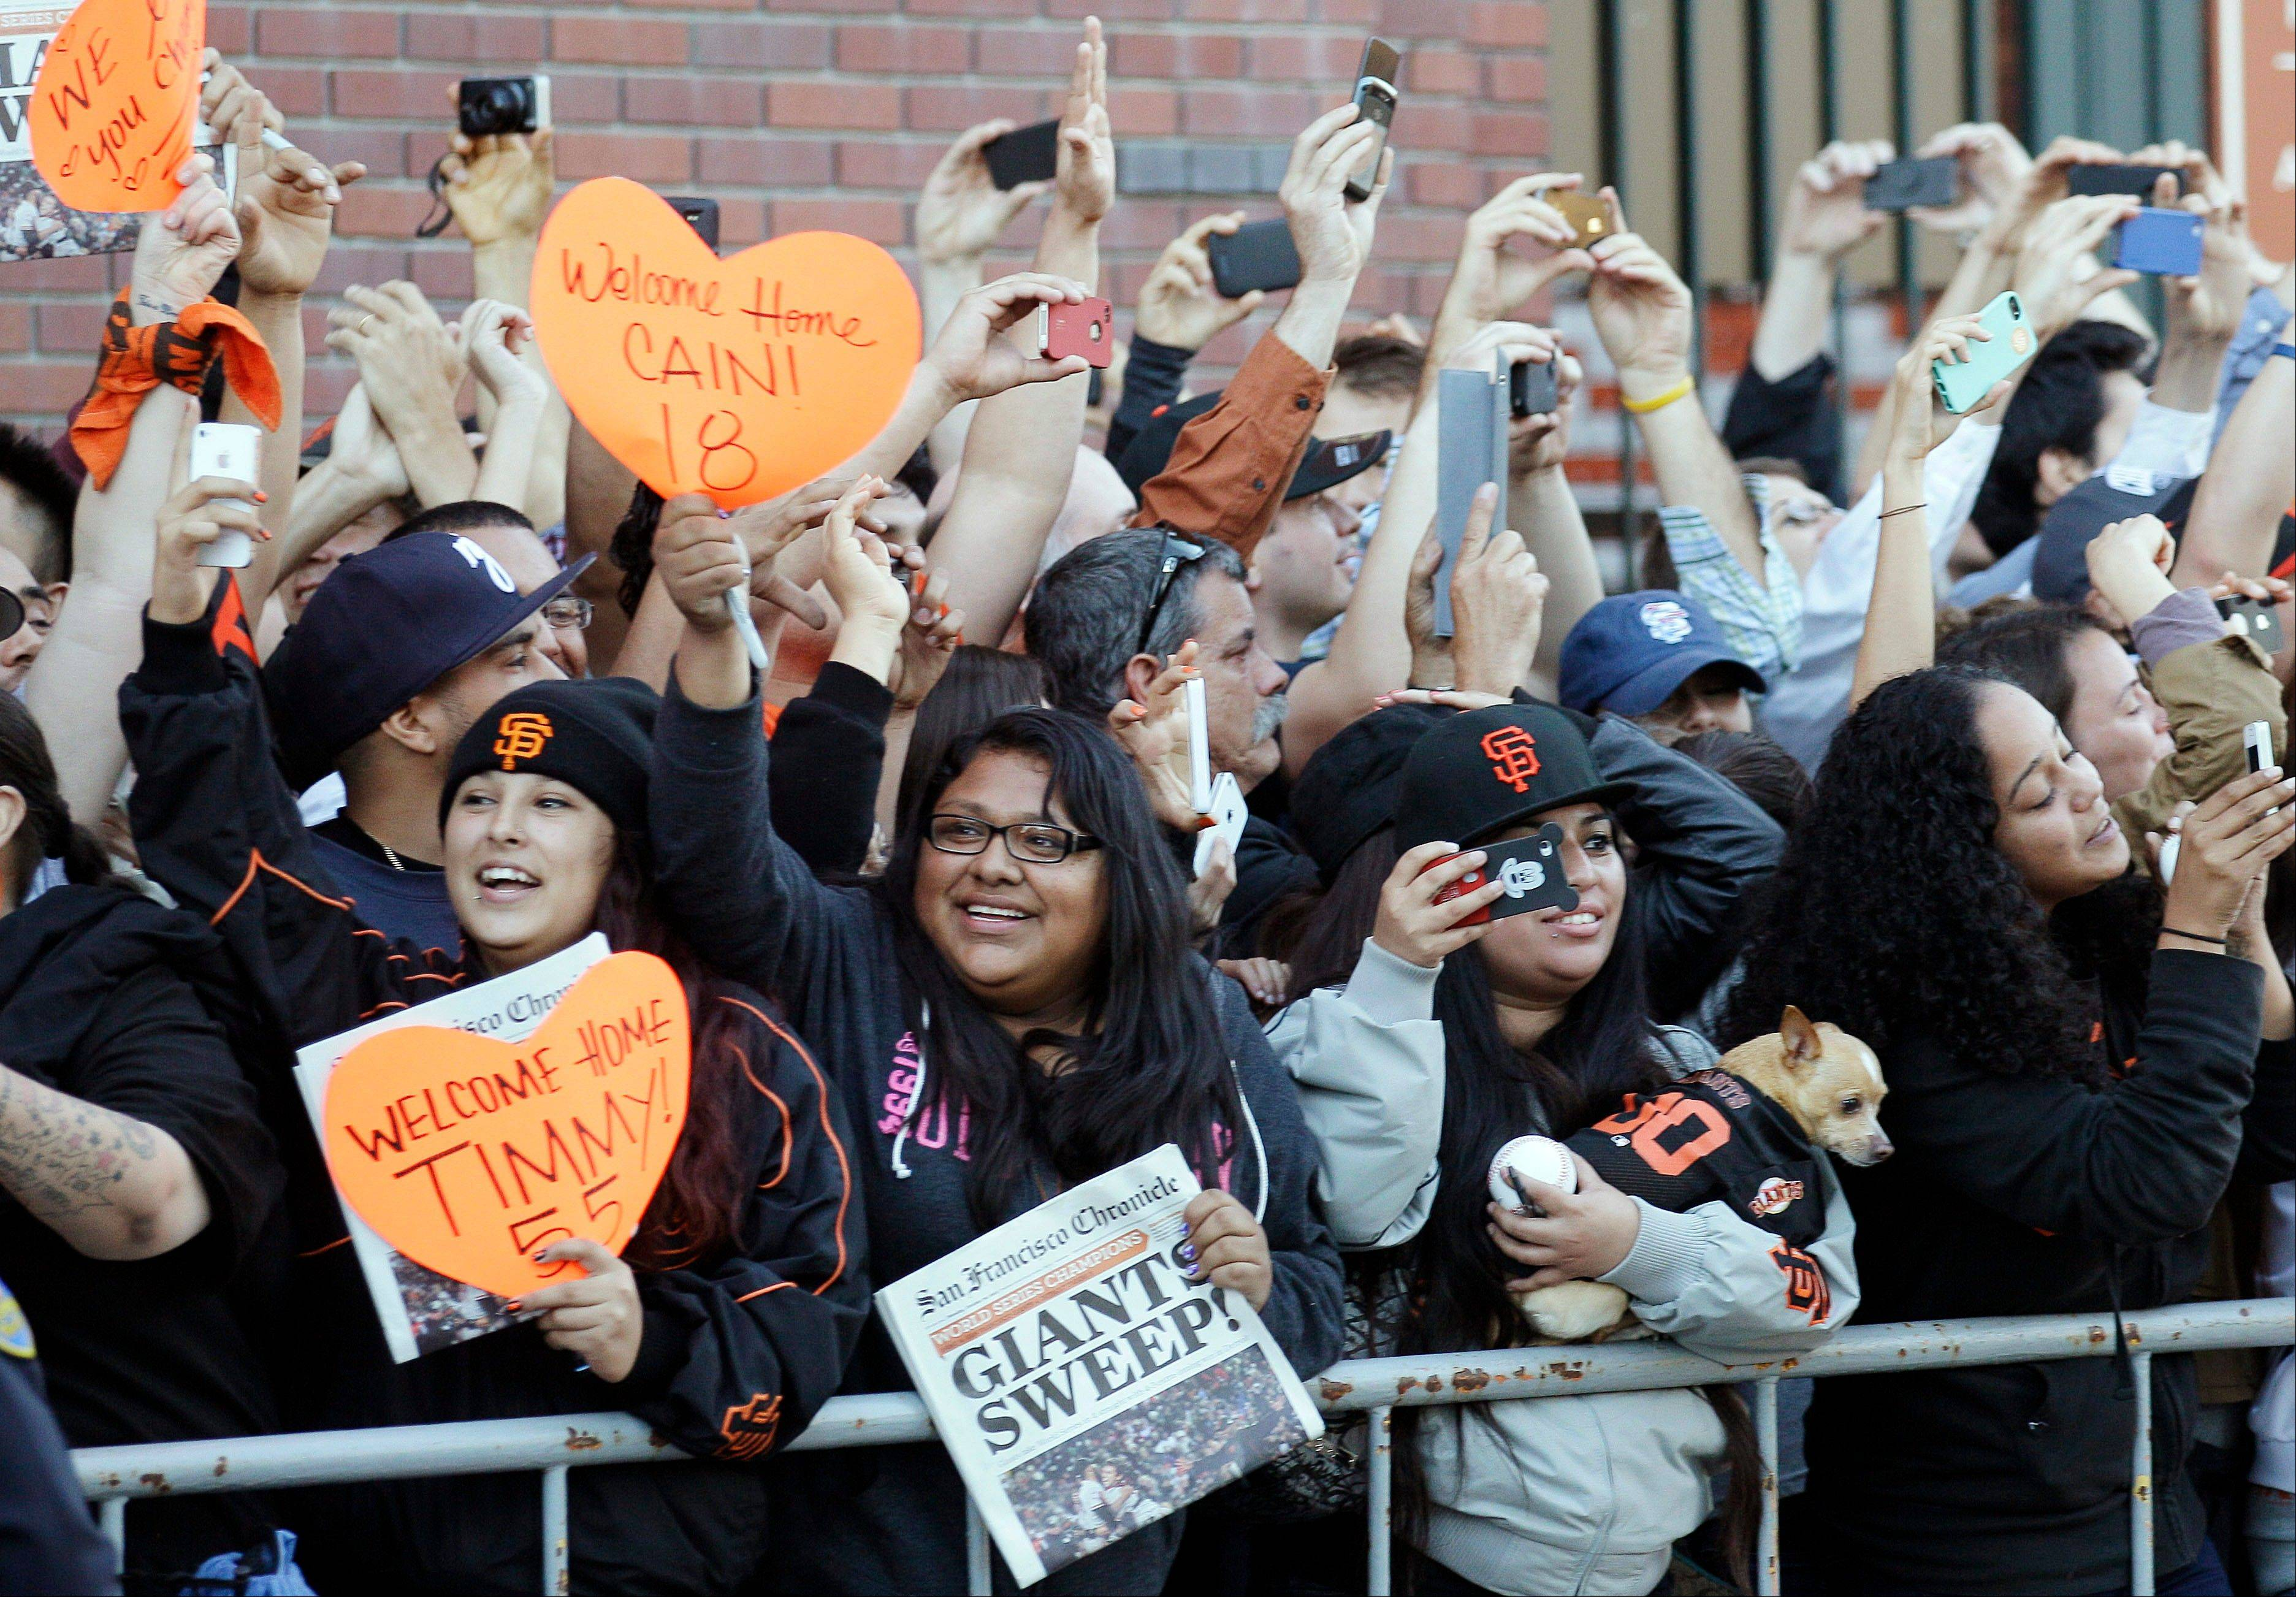 San Francisco Giants fans cheer as the team buses arrive outside of AT&T Park in San Francisco, Monday, Oct. 29, 2012. The Giants defeated the Detroit Tigers to win baseball�s World Series.